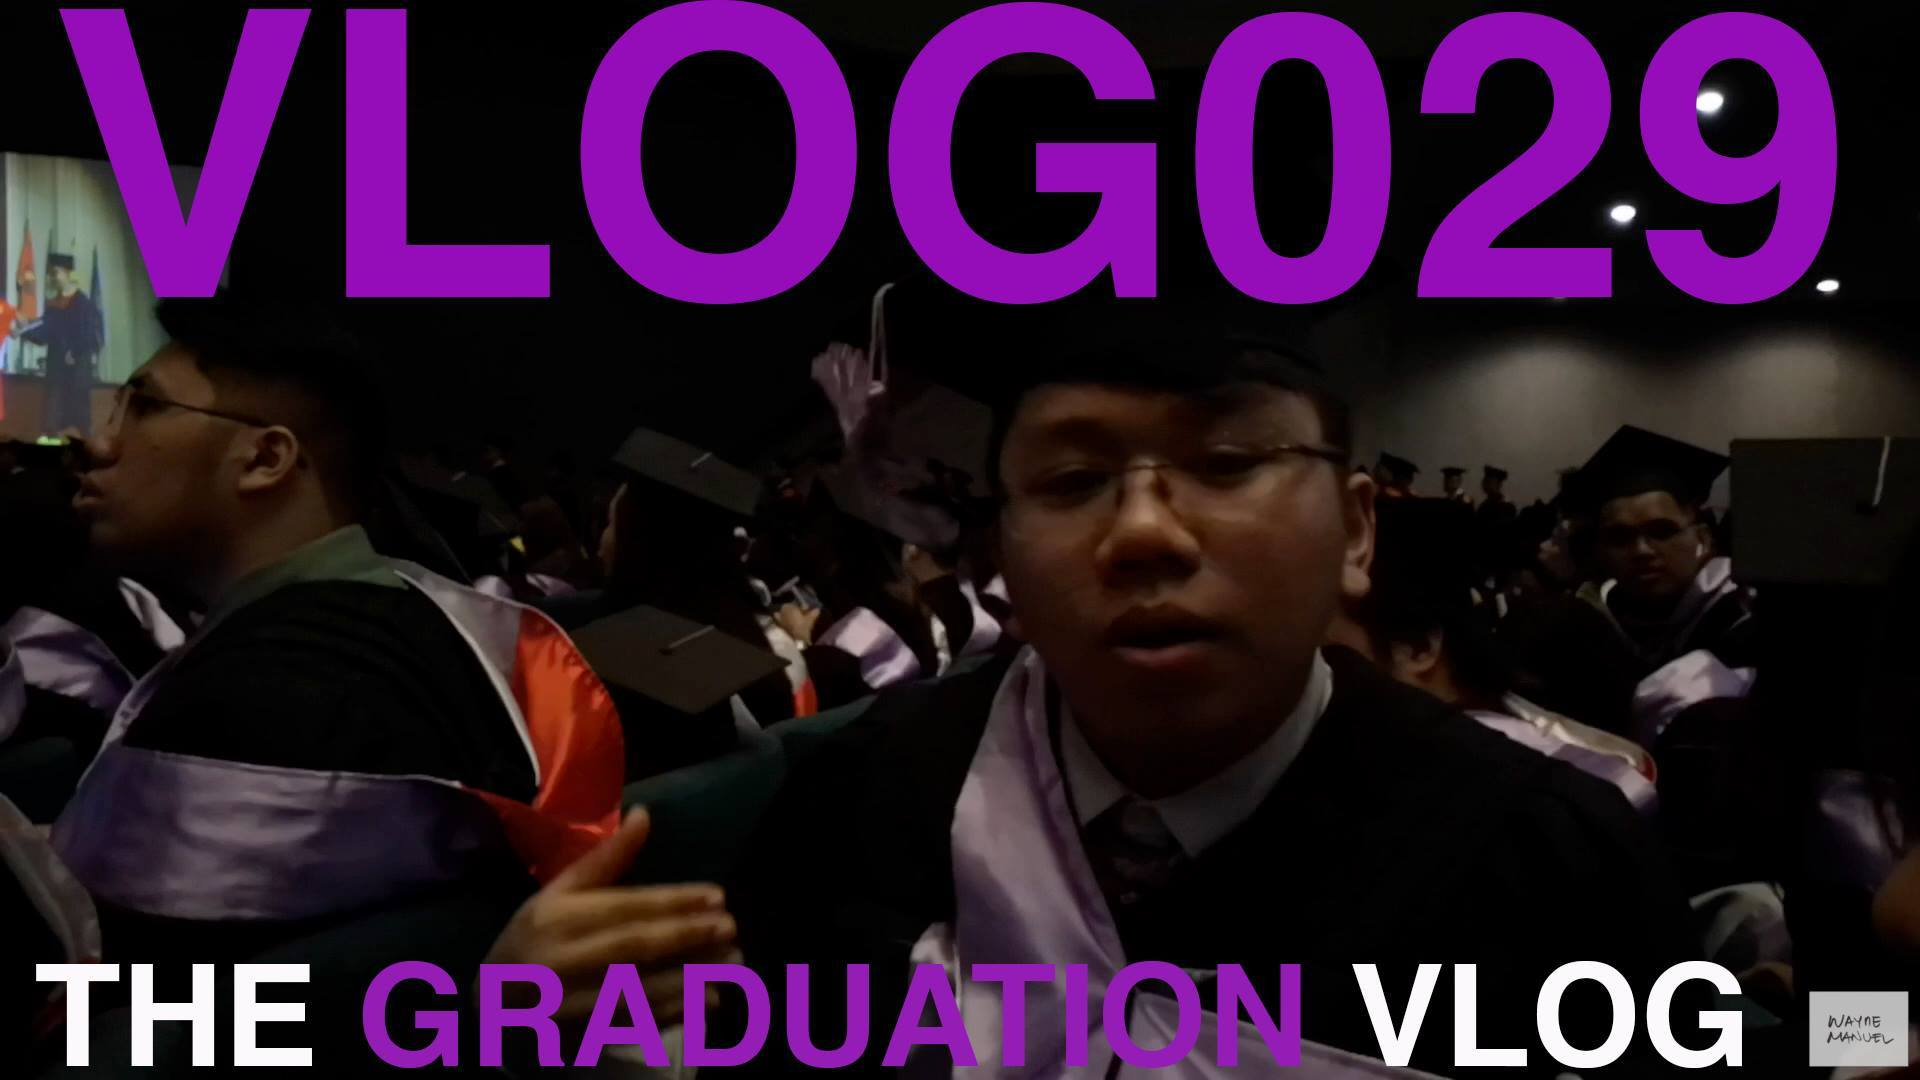 VLOG029: THE GRADUATION VLOG